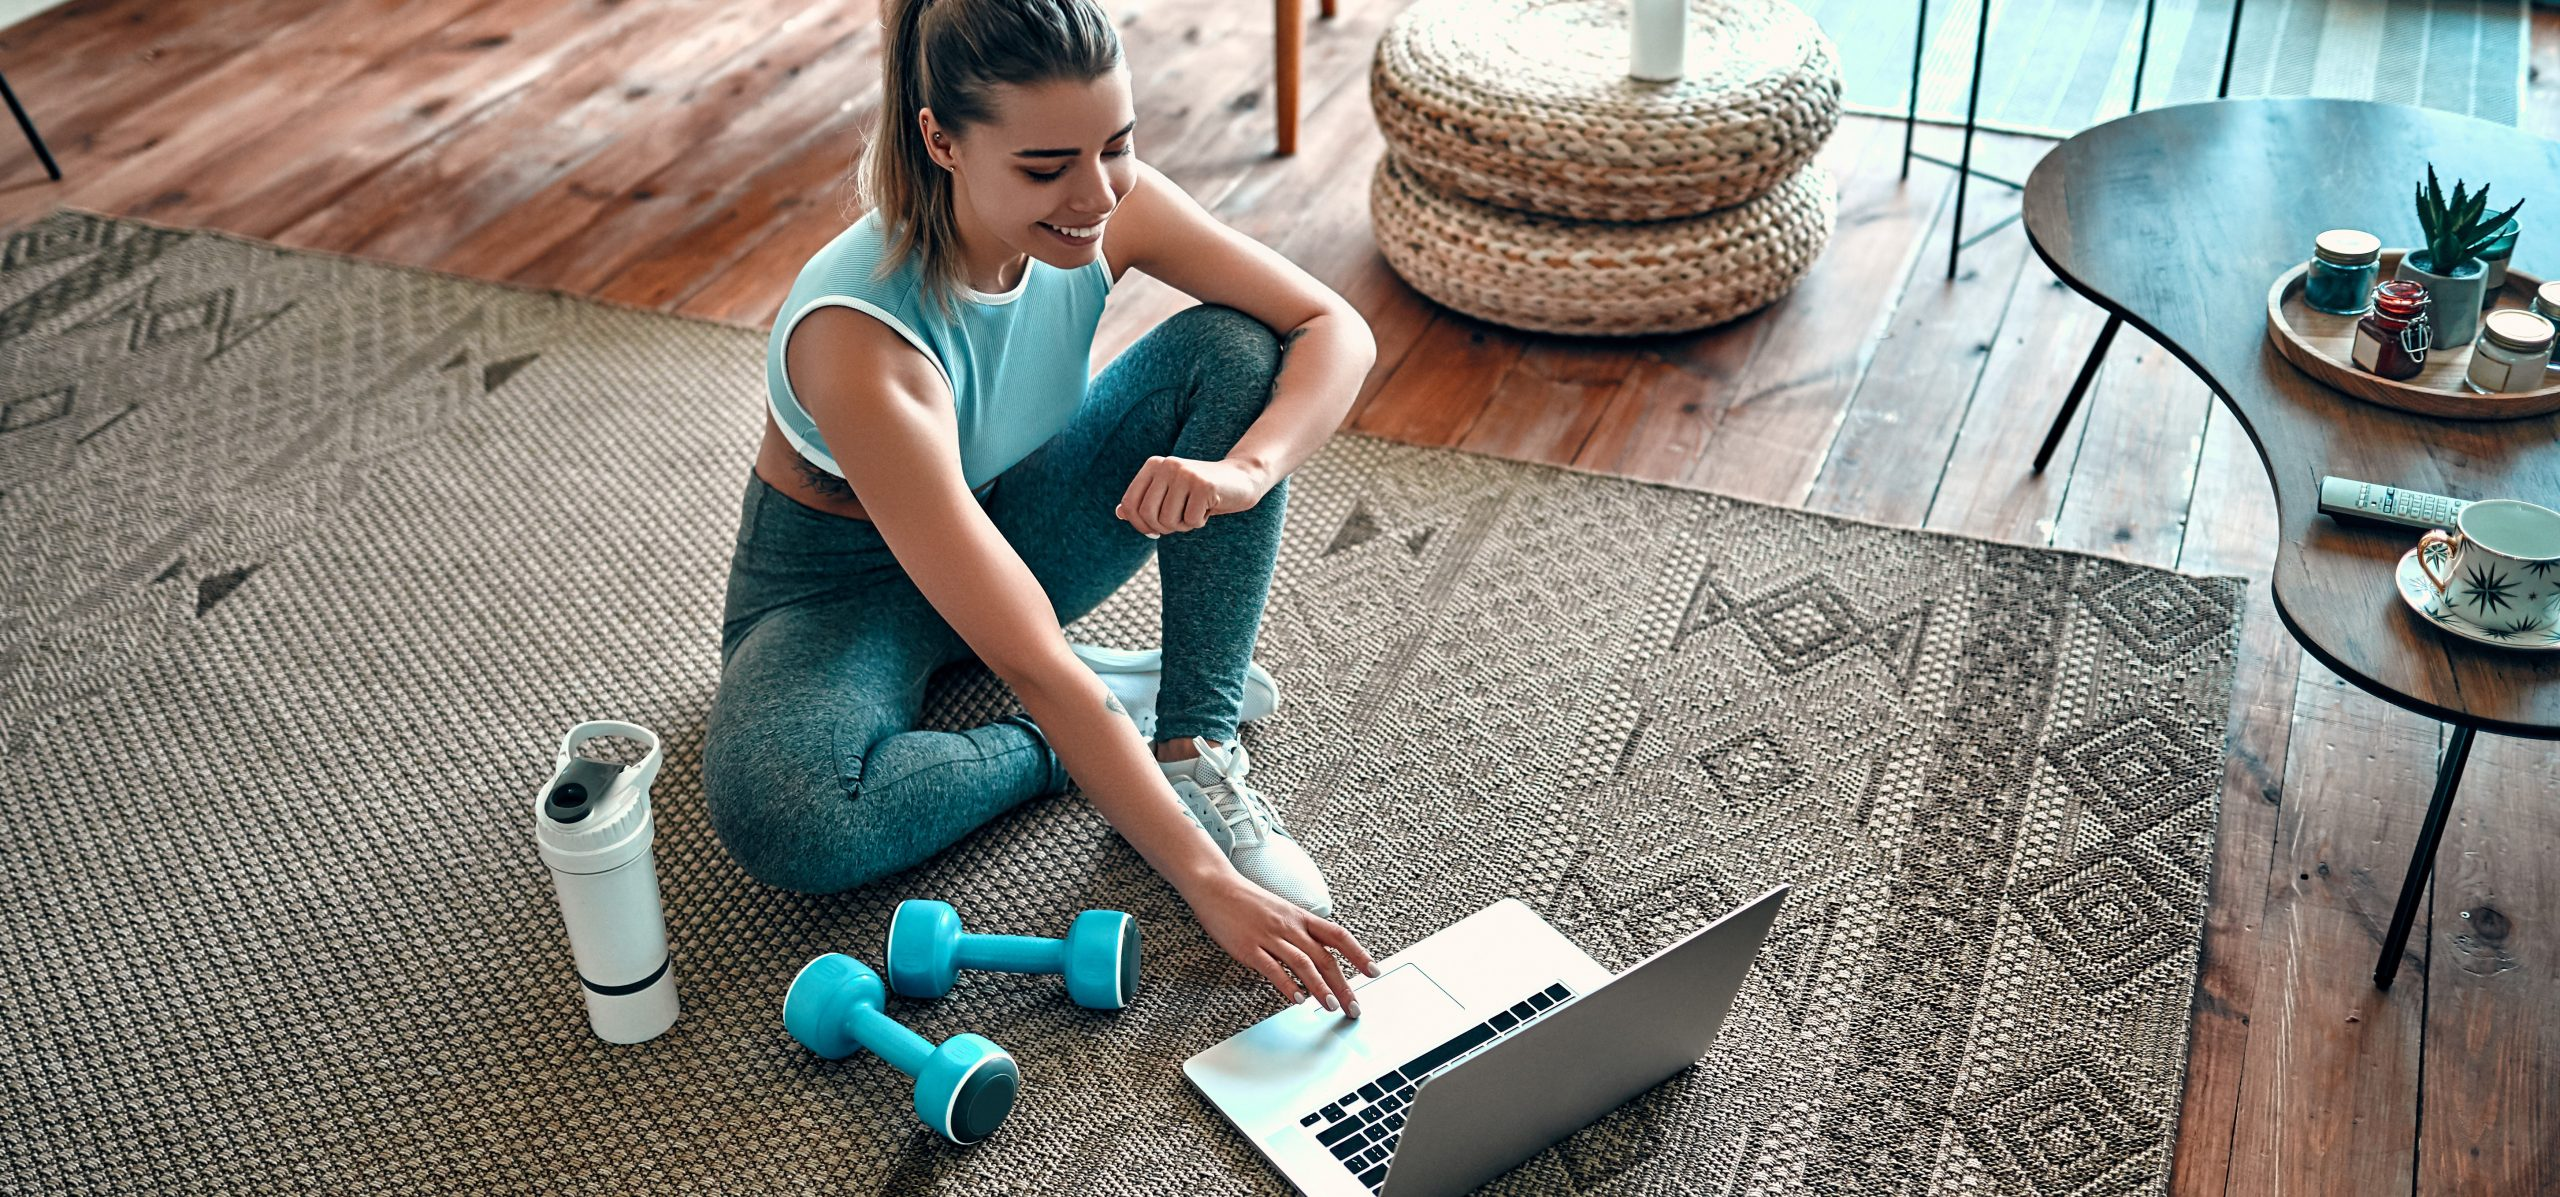 Working Out at Home? Here's What You'll Need